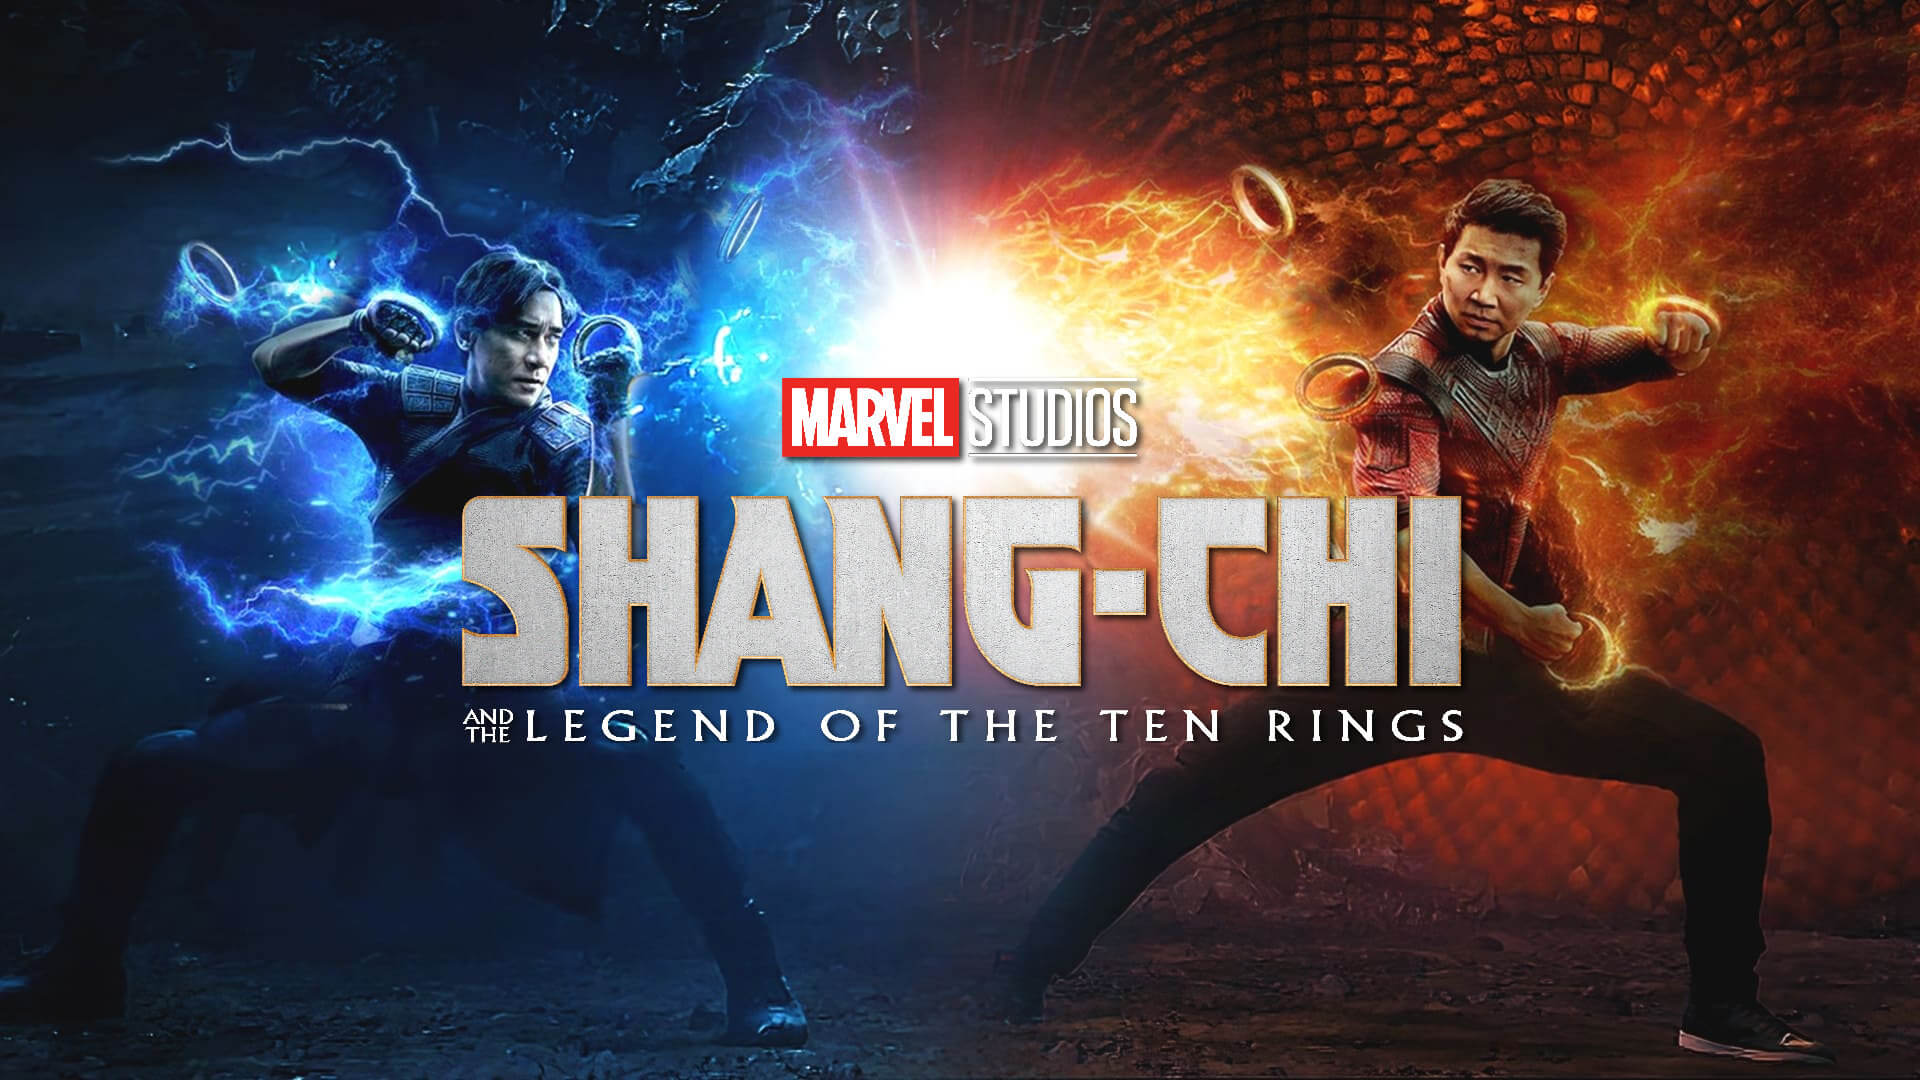 Shang-Chi-The-Legend-Of-The-Ten-Rings-mcu-movie-2021